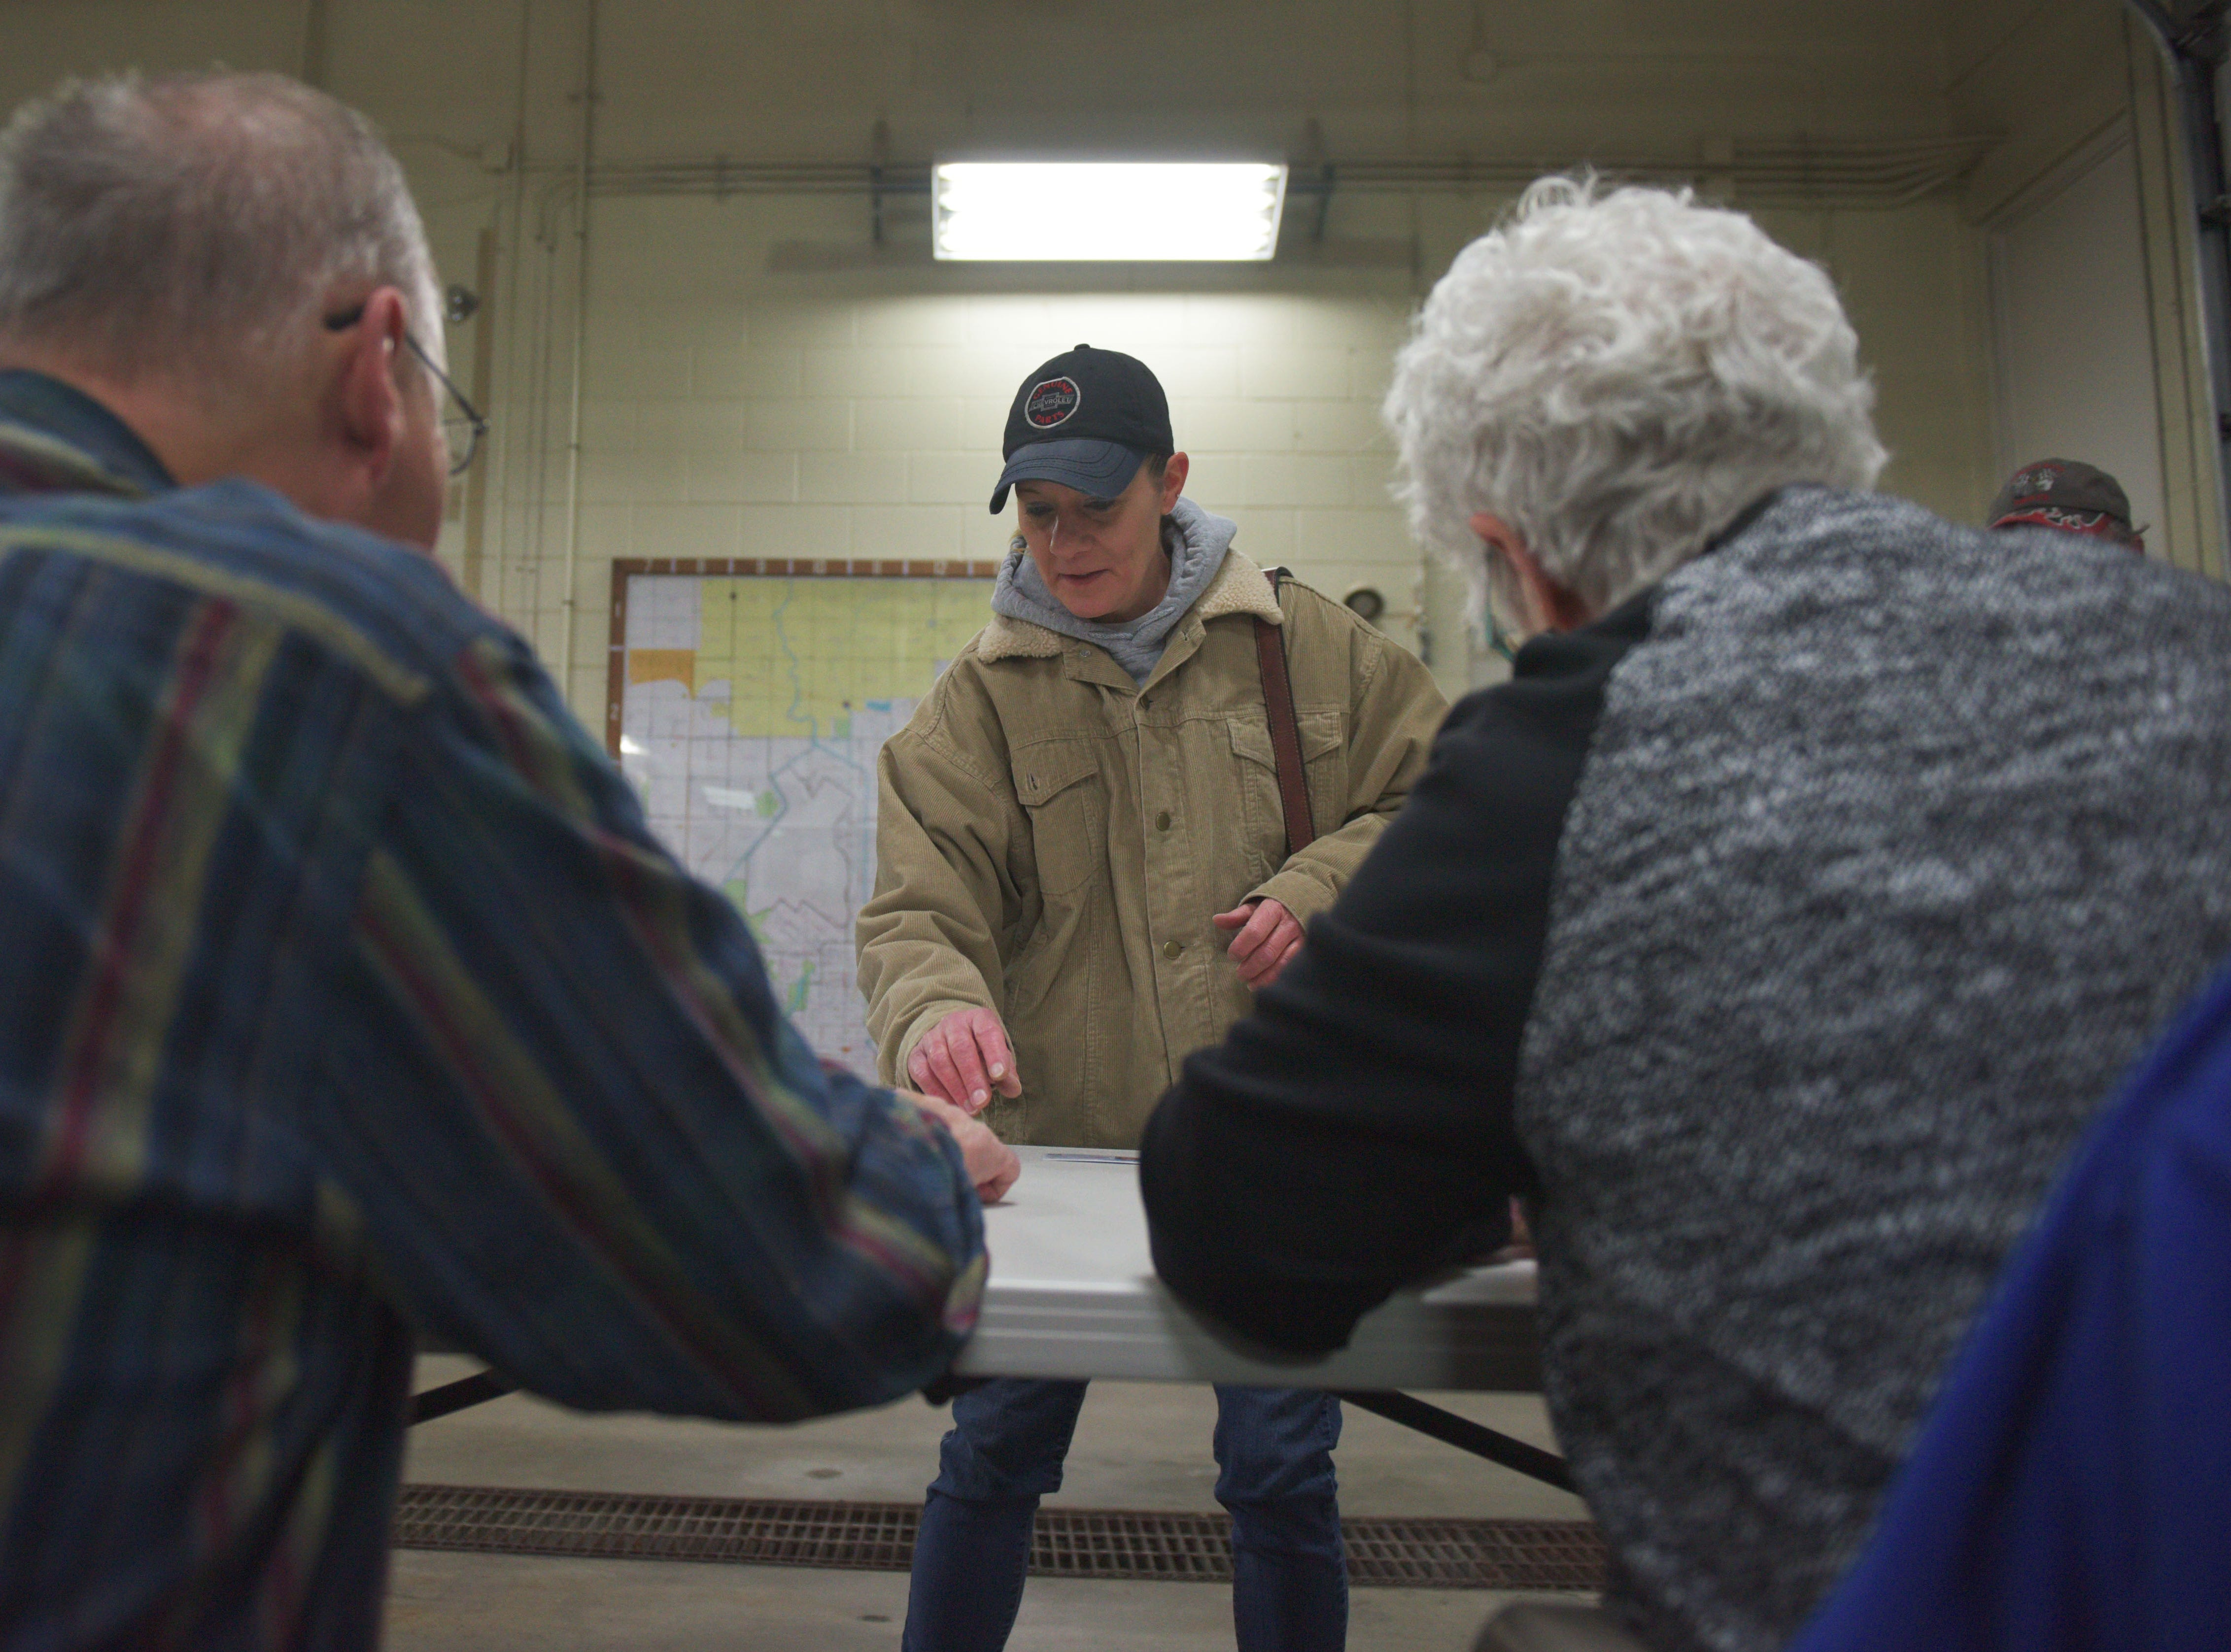 Melinda Meyer votes in the 2018 midterm elections Tuesday, Nov. 6, at Fire Station #7 in Sioux Falls.